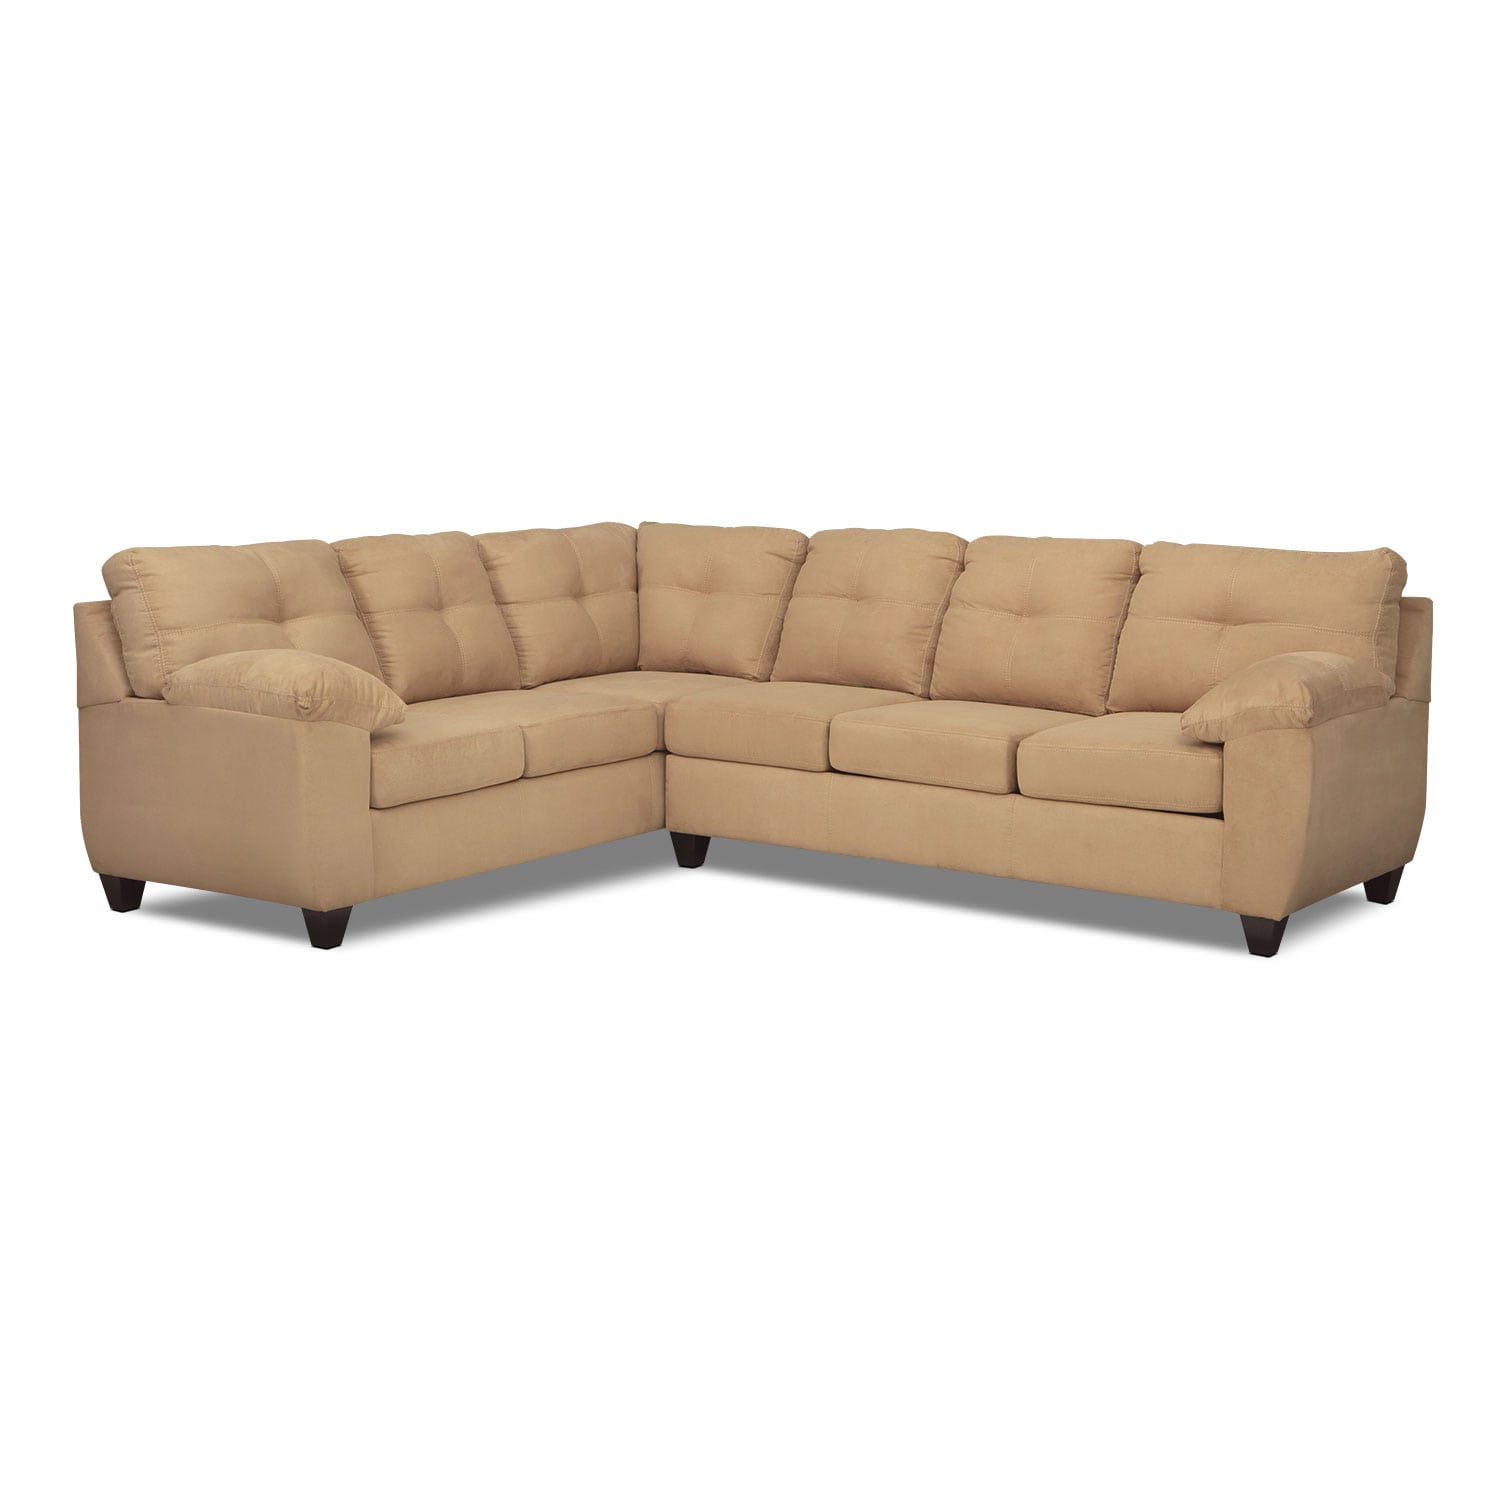 Living Room Furniture - Rialto 2-Piece Sectional with Right-Facing Memory Foam Sleeper - Camel